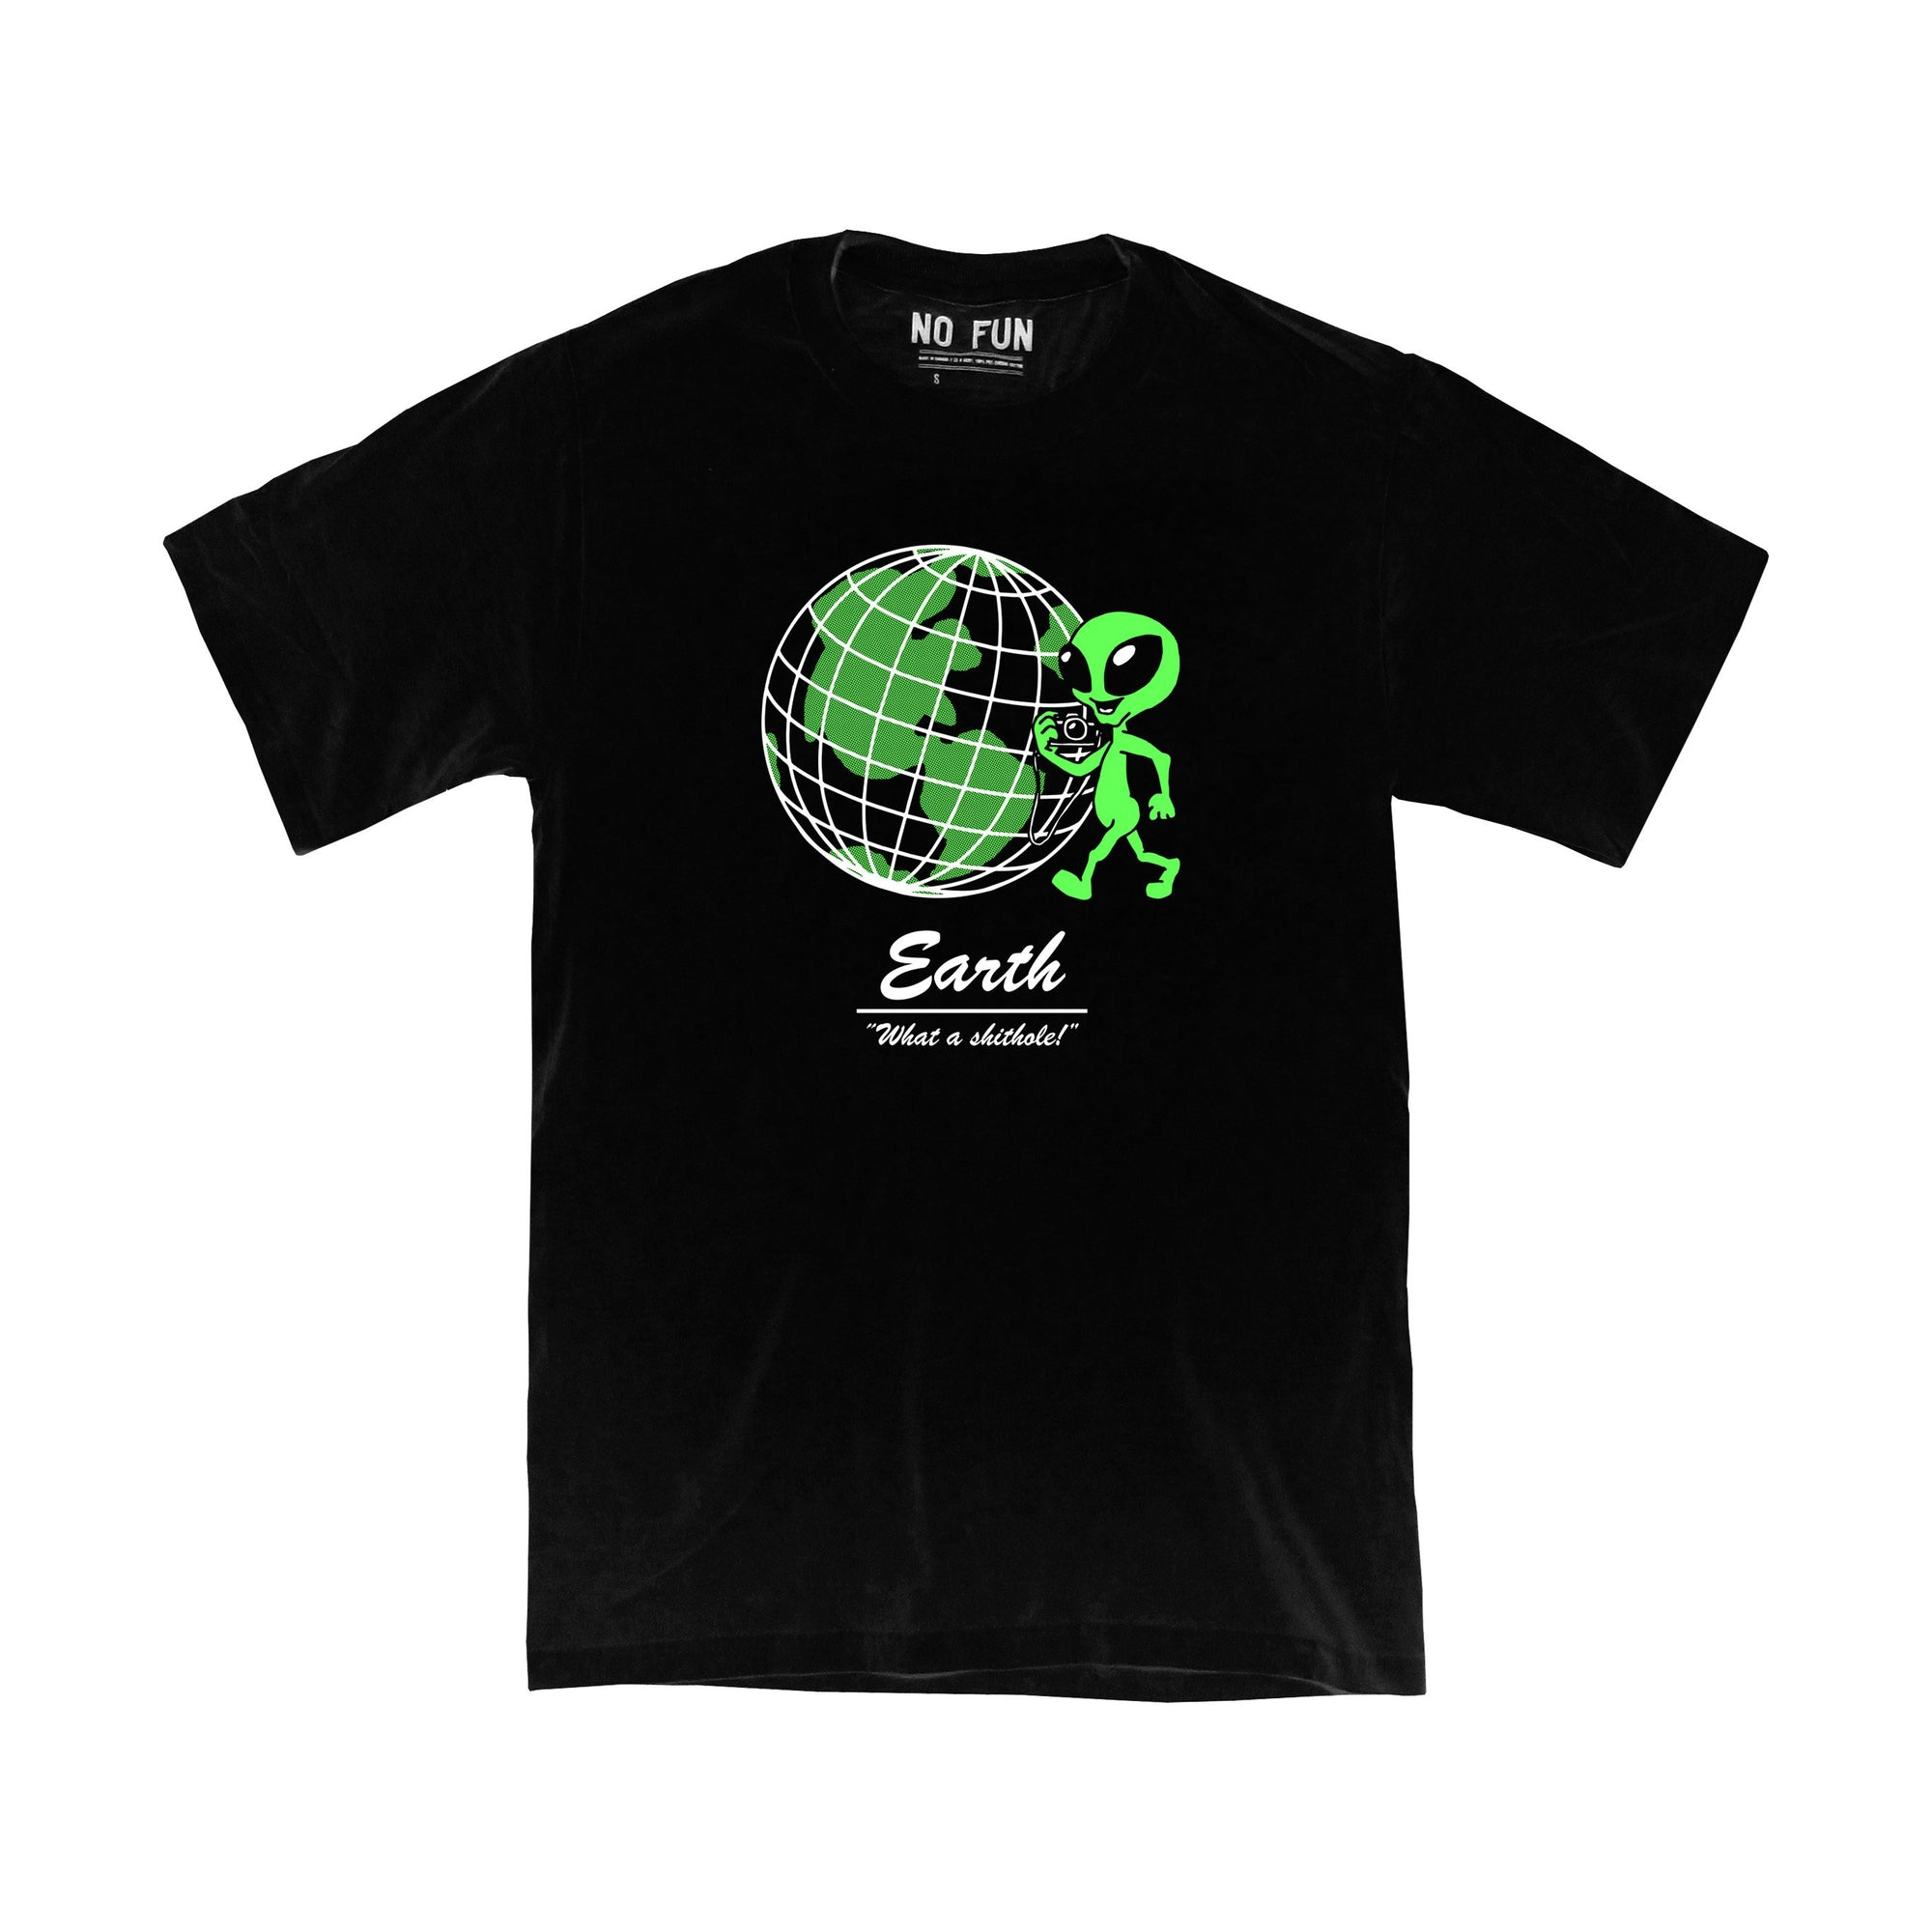 "Photo of the original ""Tourist"" T-shirt by NO FUN®.  T-shirt is black and features an image of the planet earth in green and white, alongside an alien holding a camera in green.  The text underneath the graphic reads ""Earth 'What a shithole!""."